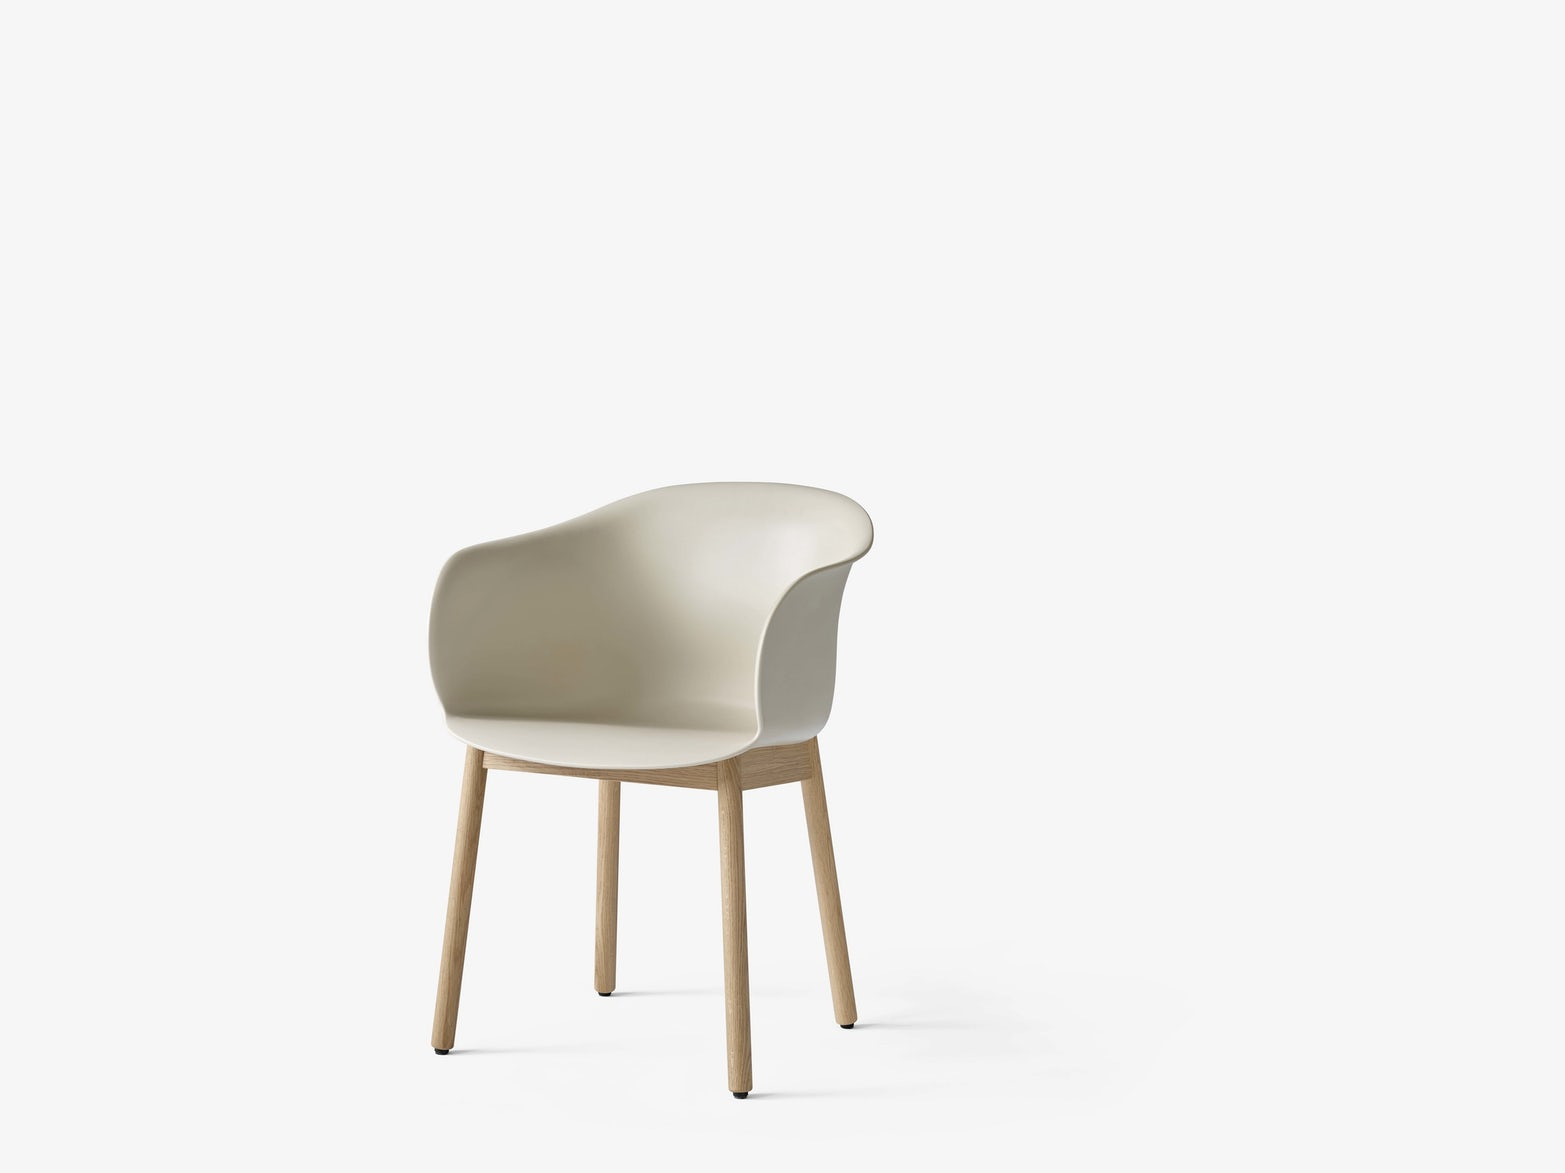 Elefy jh30 chair jaime hayon andtradition 7